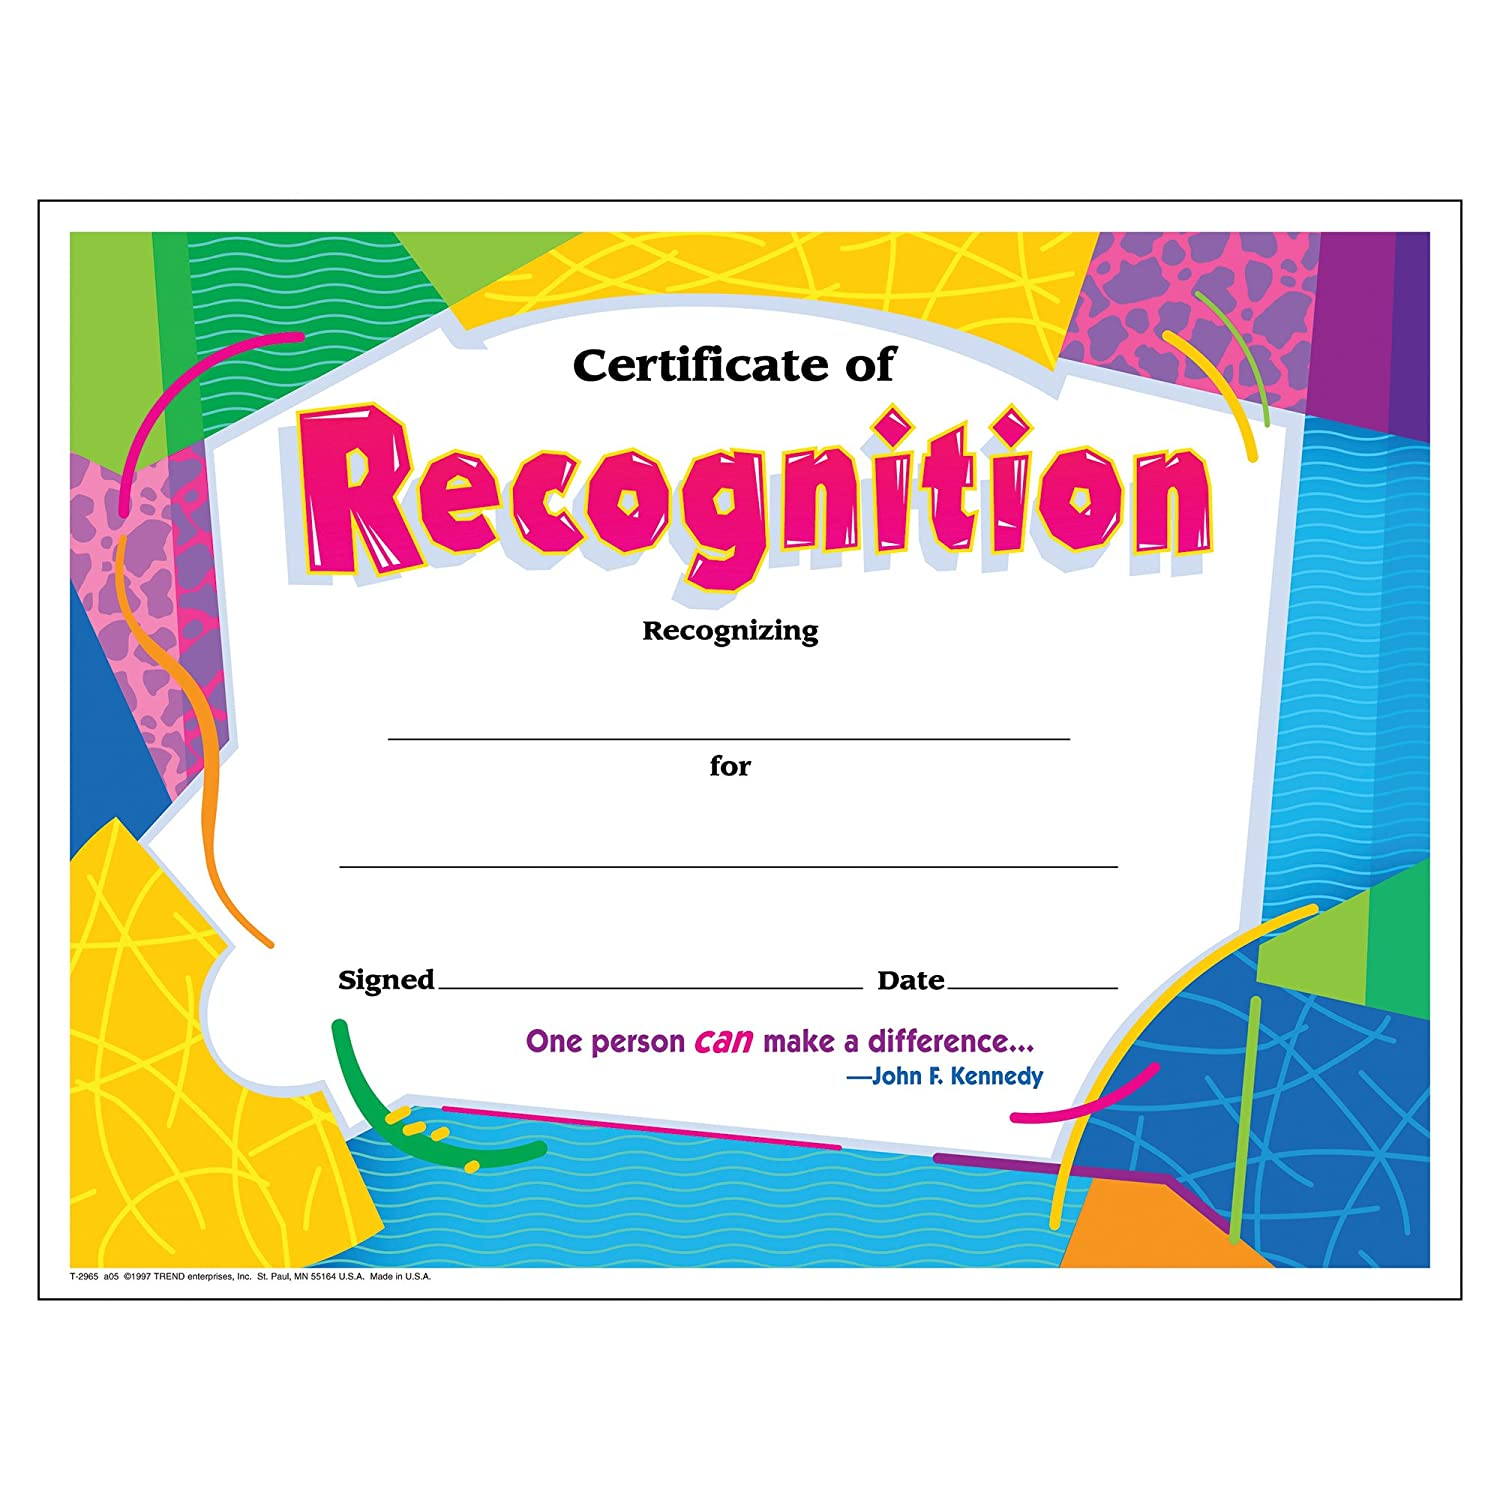 Awards Certificates Amazon – Printable Certificate of Recognition